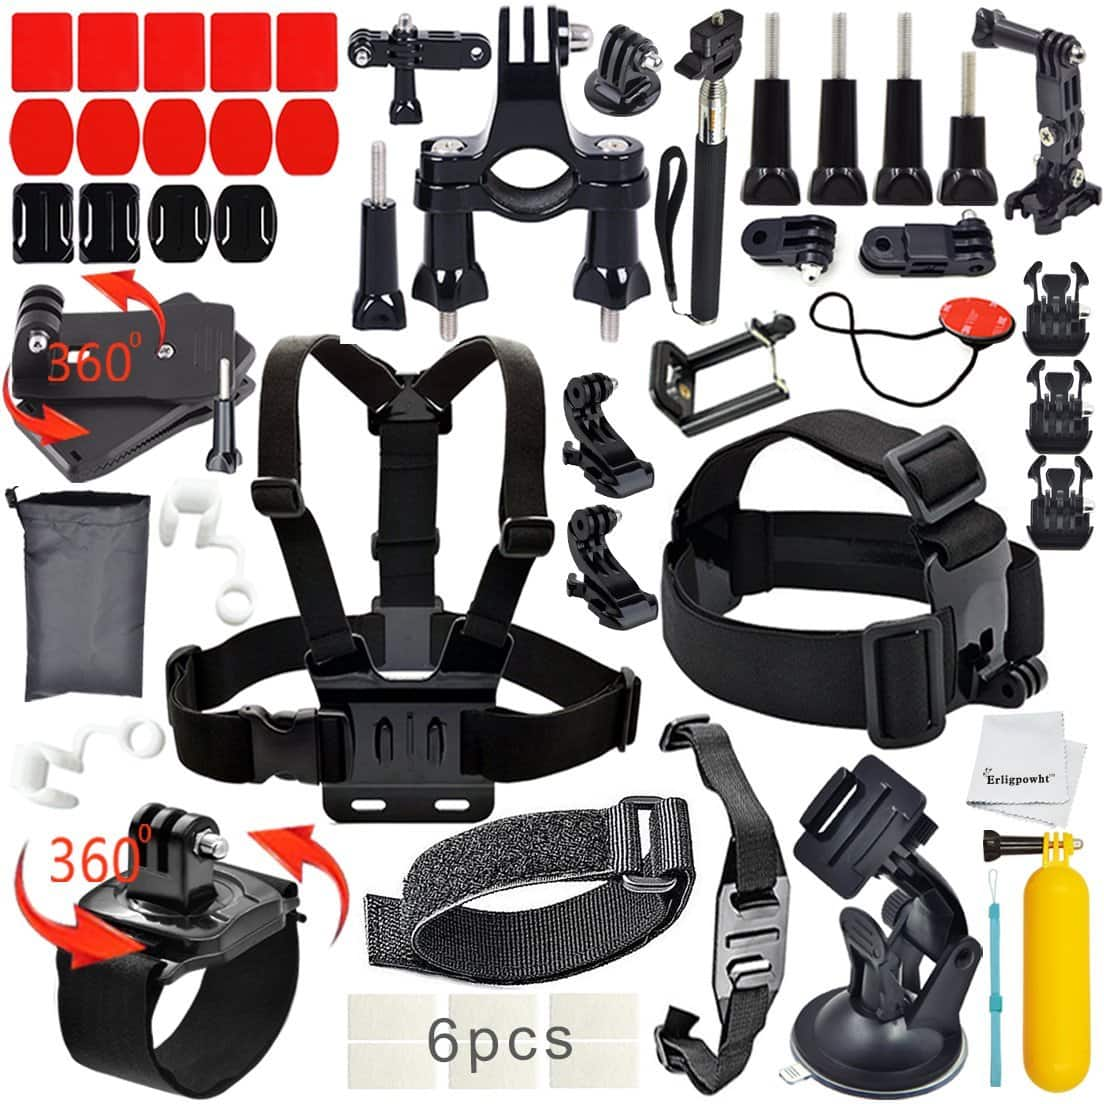 $8.99 - Outdoor Sports Kit Ultimate Combo Kit w/ 40 Accessories for GoPro